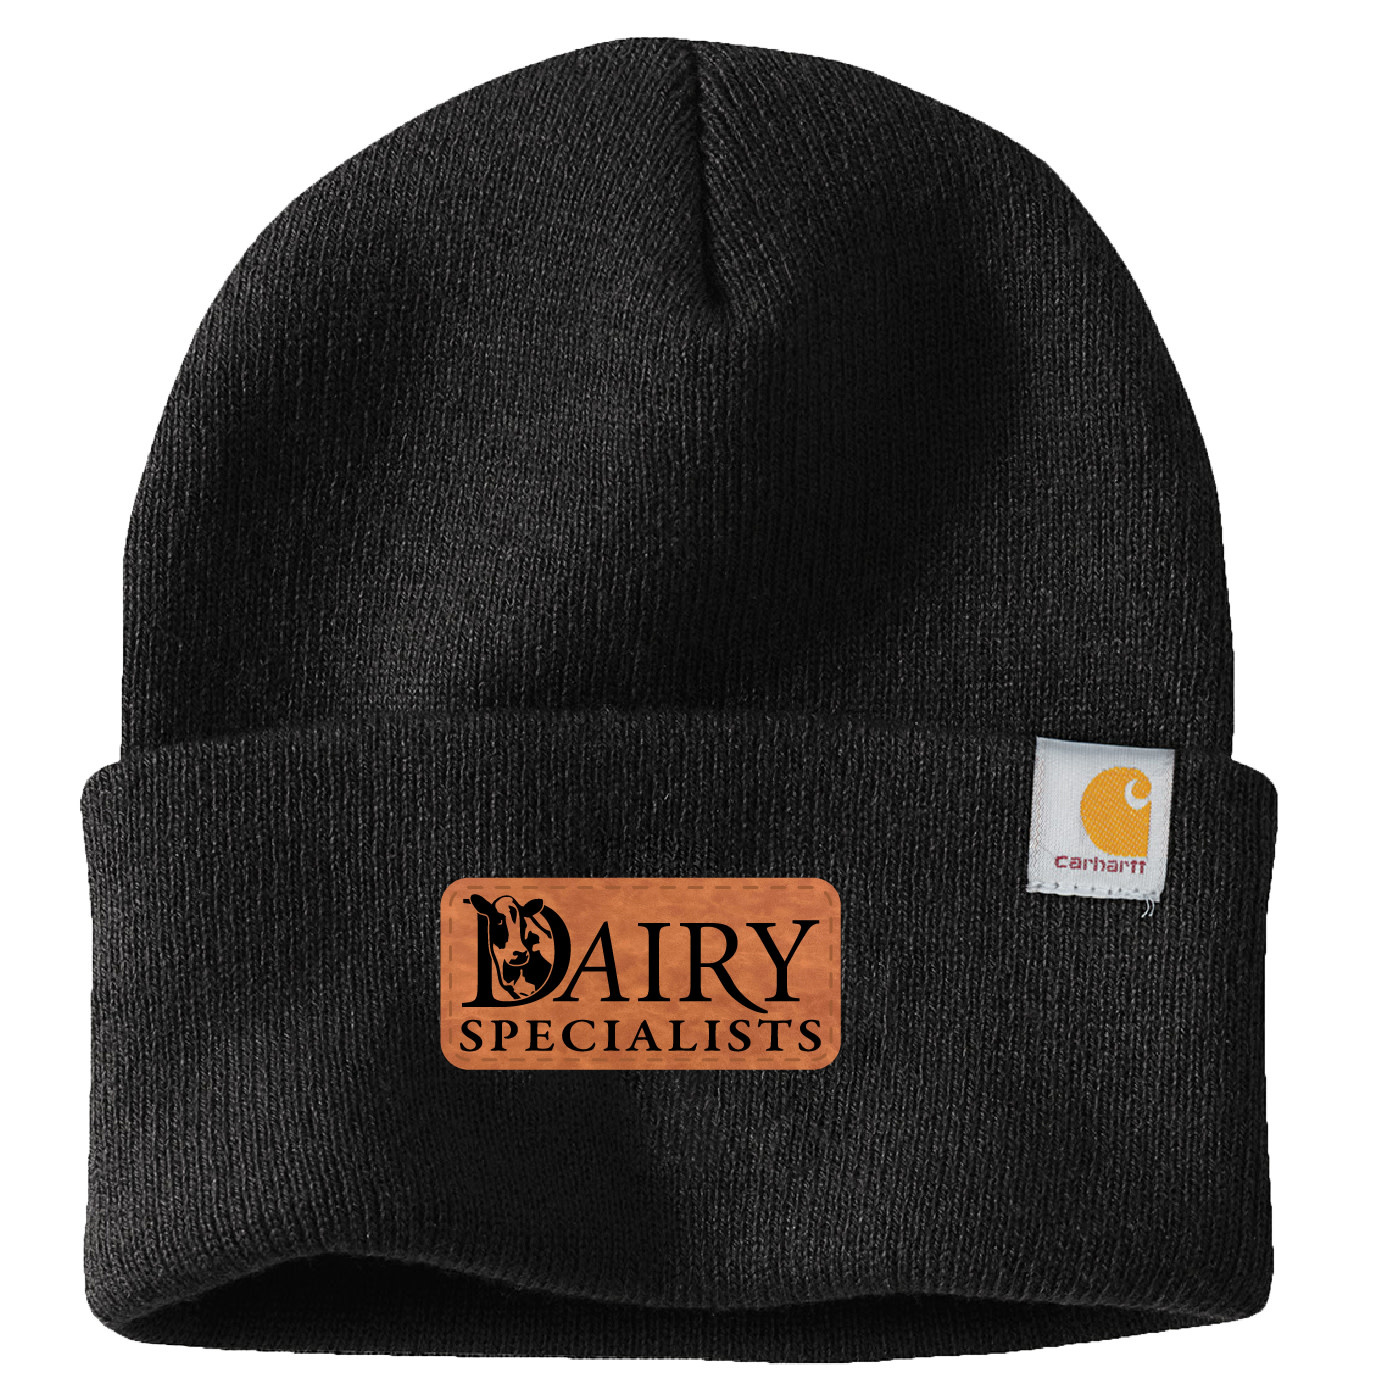 Carhartt Carhartt Watch Cap 2.0 (Black)